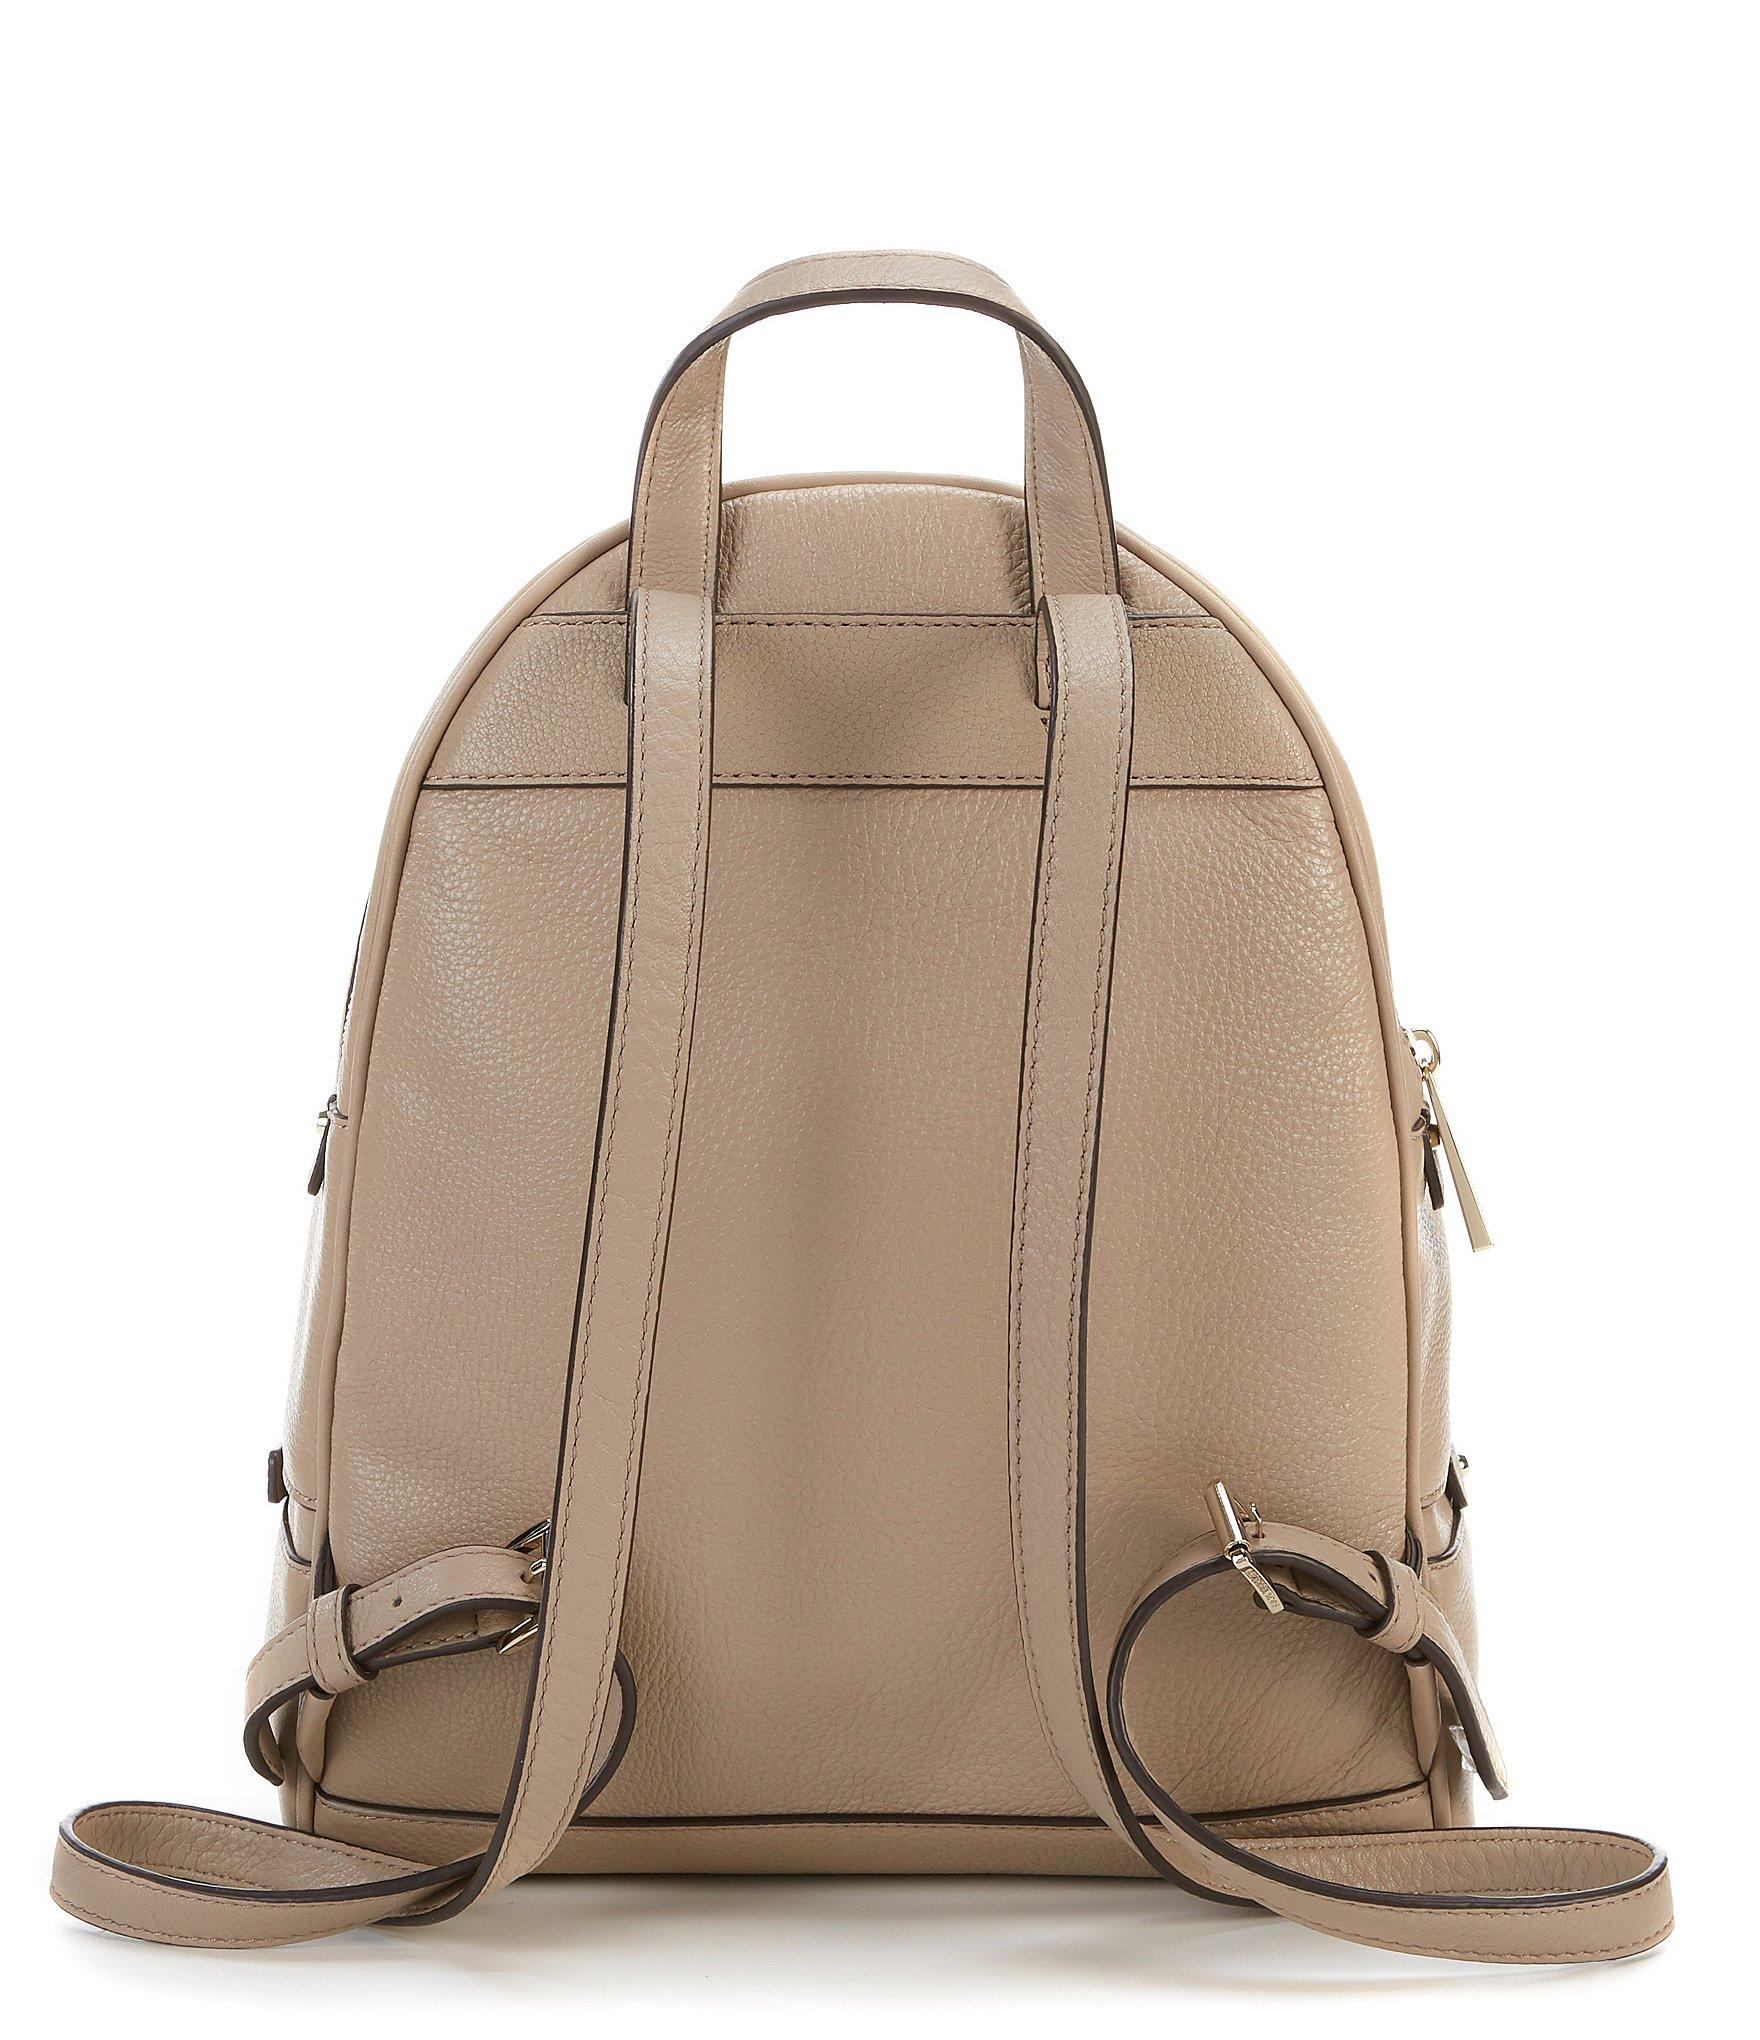 MICHAEL Michael Kors - Multicolor Rhea Medium Leather Backpack - Lyst. View  fullscreen 535f84437175f